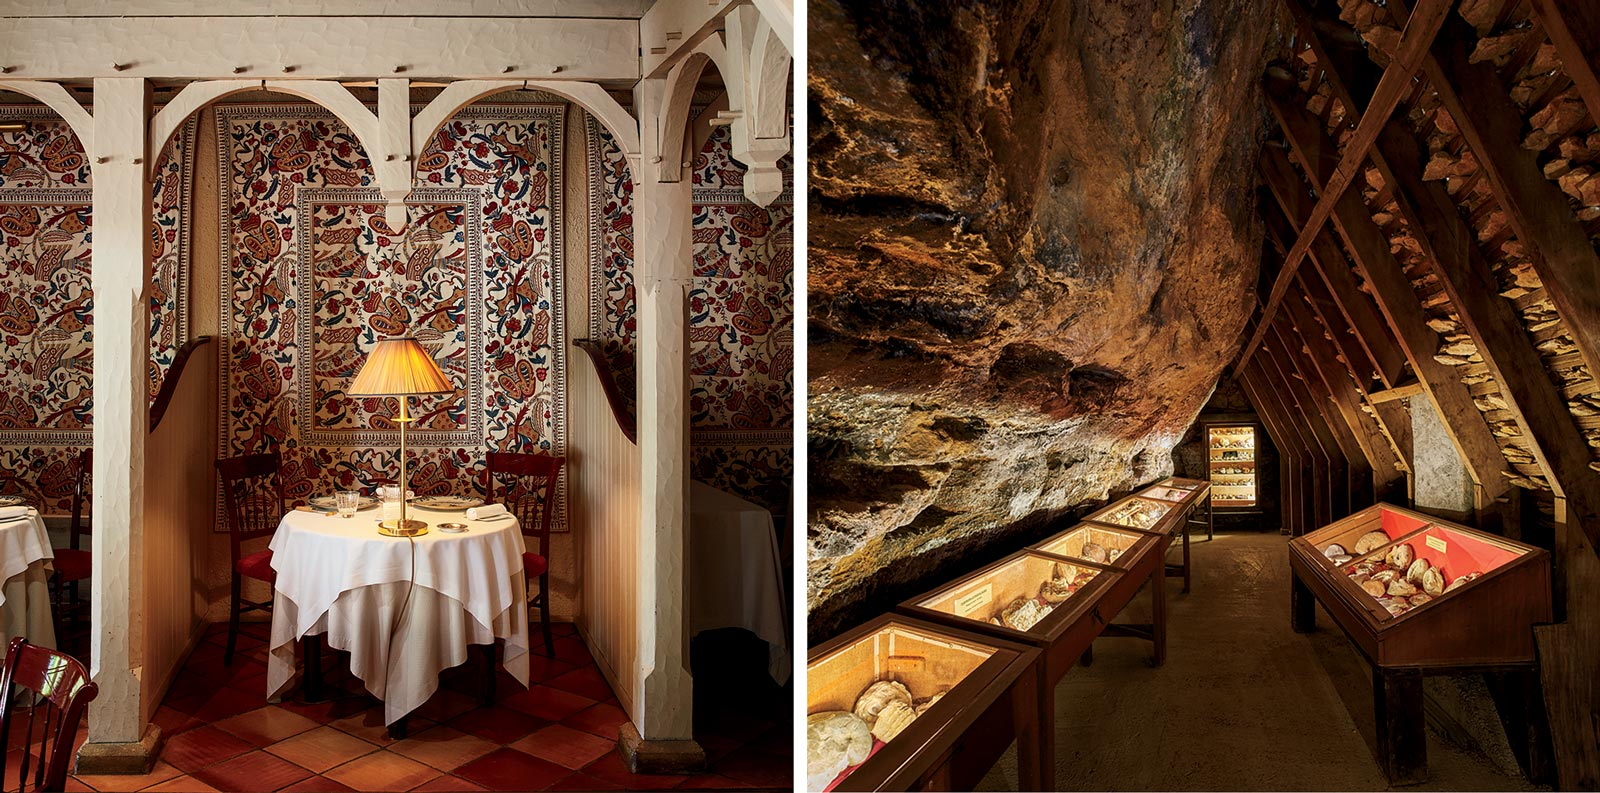 Restaurants and cave visits in Dordogne, France